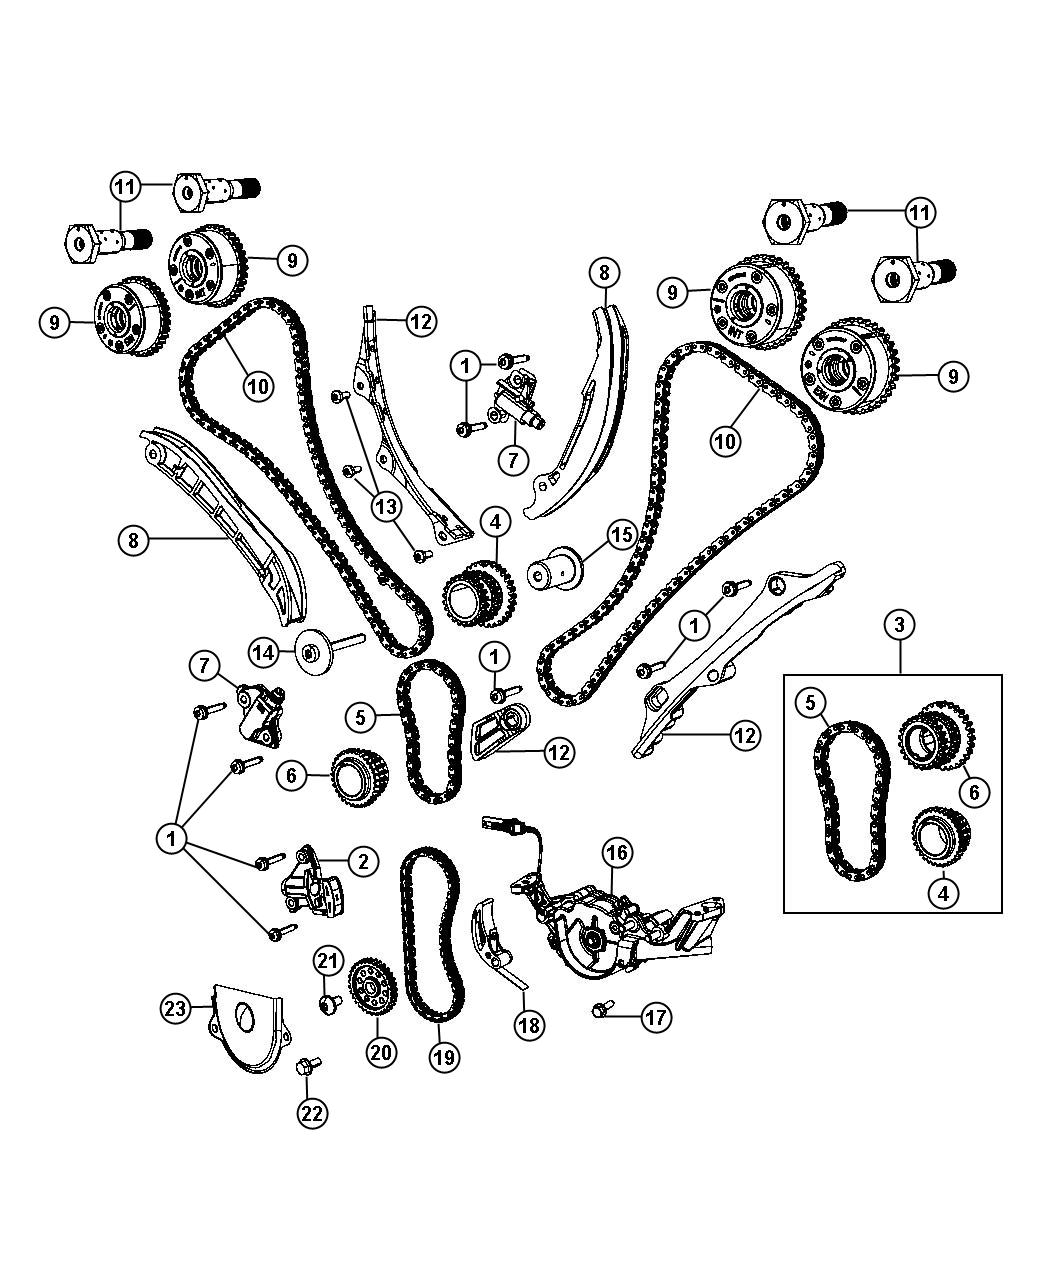 Dodge Guide Timing Chain Primary Installedthe